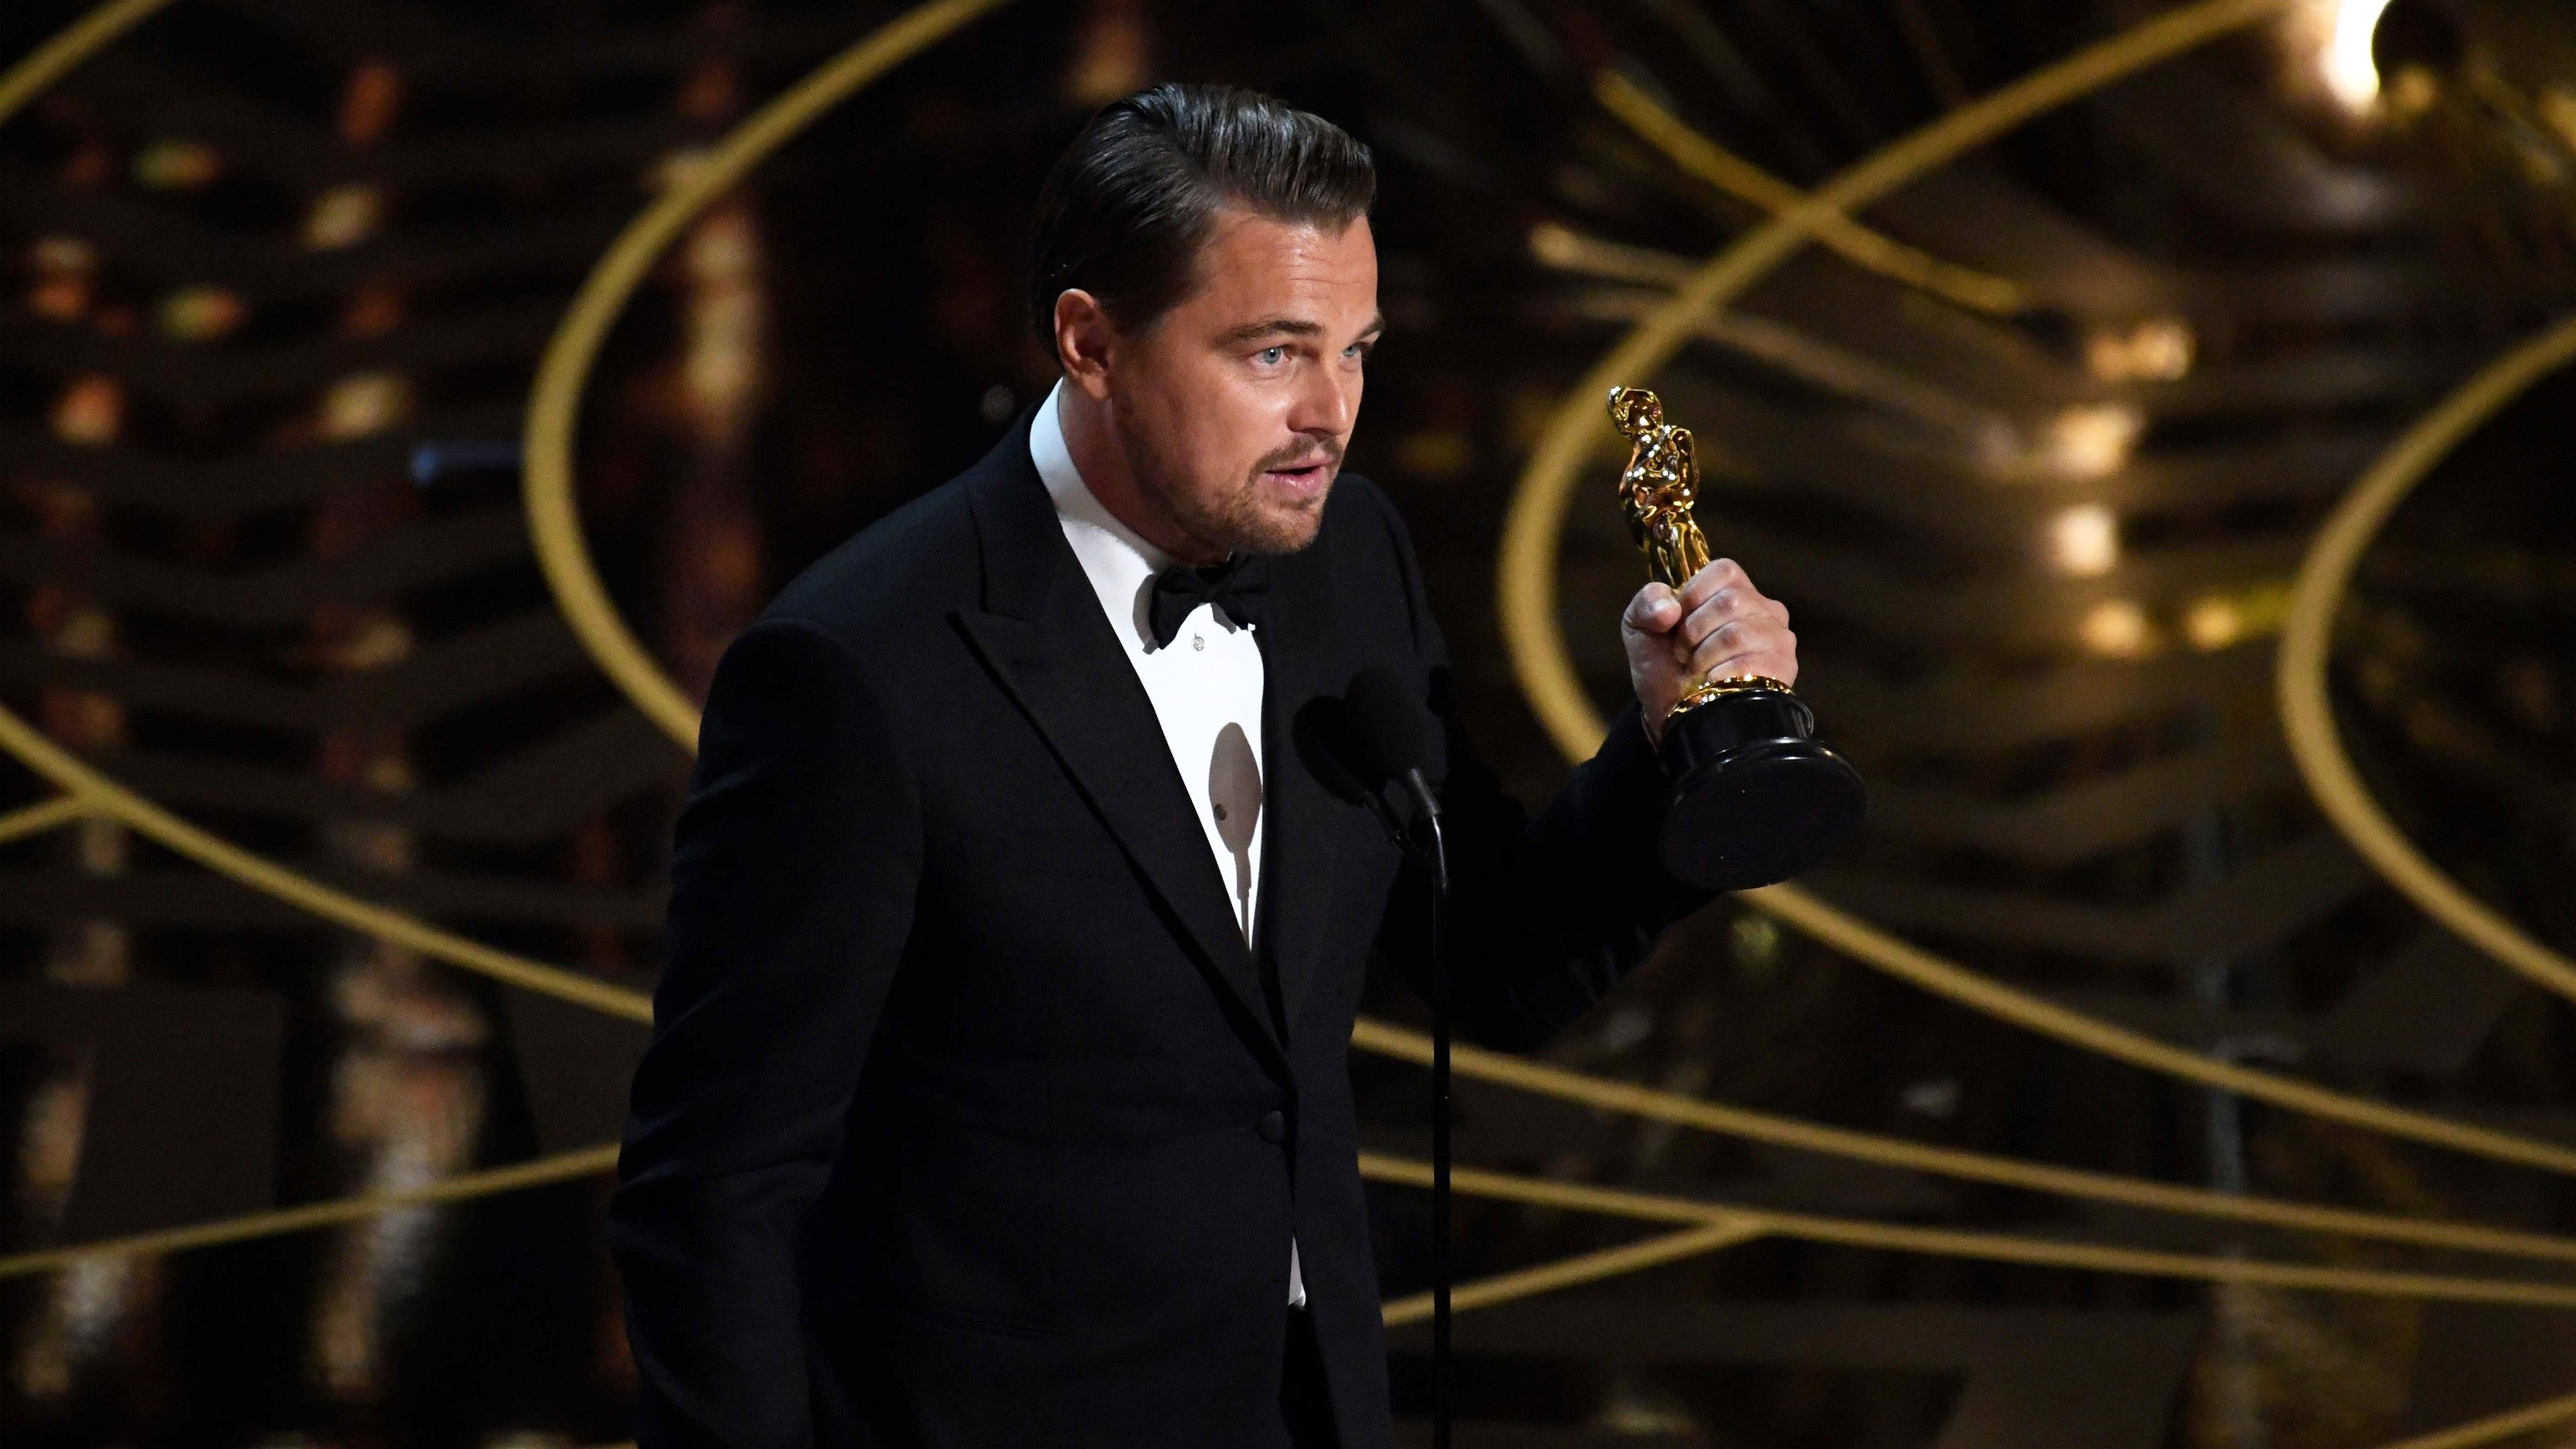 oscar leonardo dicaprio, hd celebrities, 4k wallpapers, images